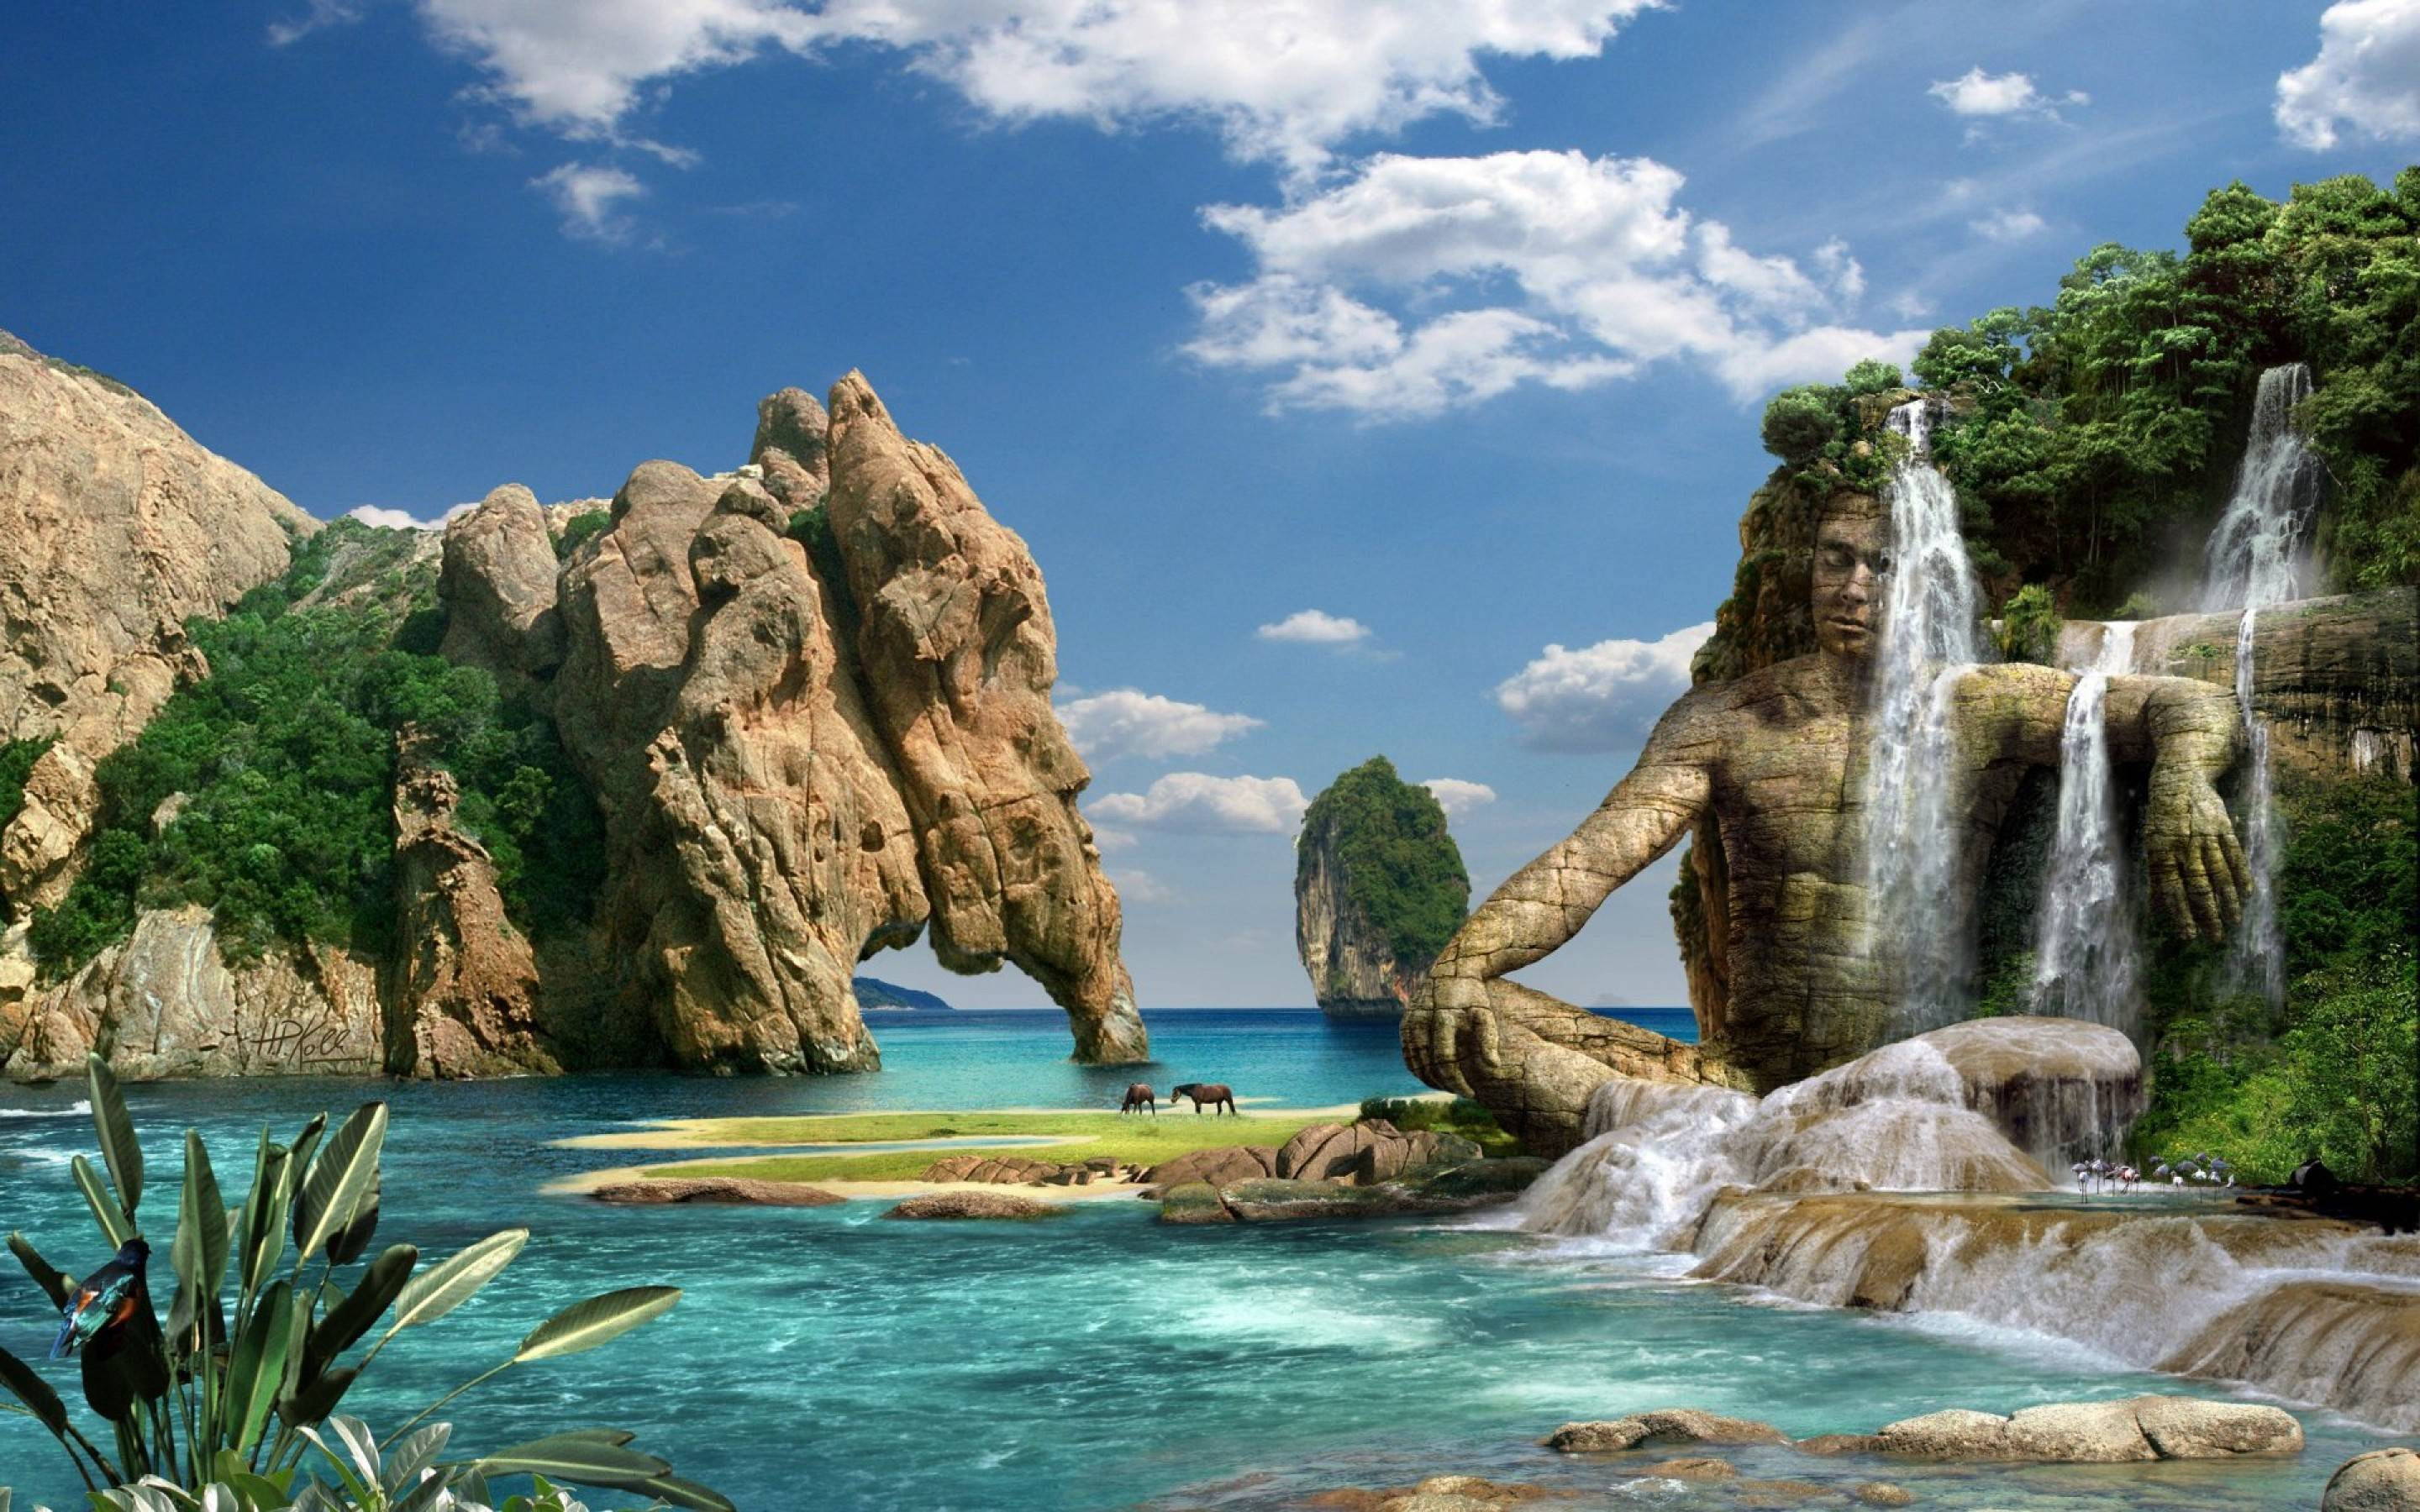 nature 3d wallpaper windows 7,natural landscape,body of water,nature,water resources,water